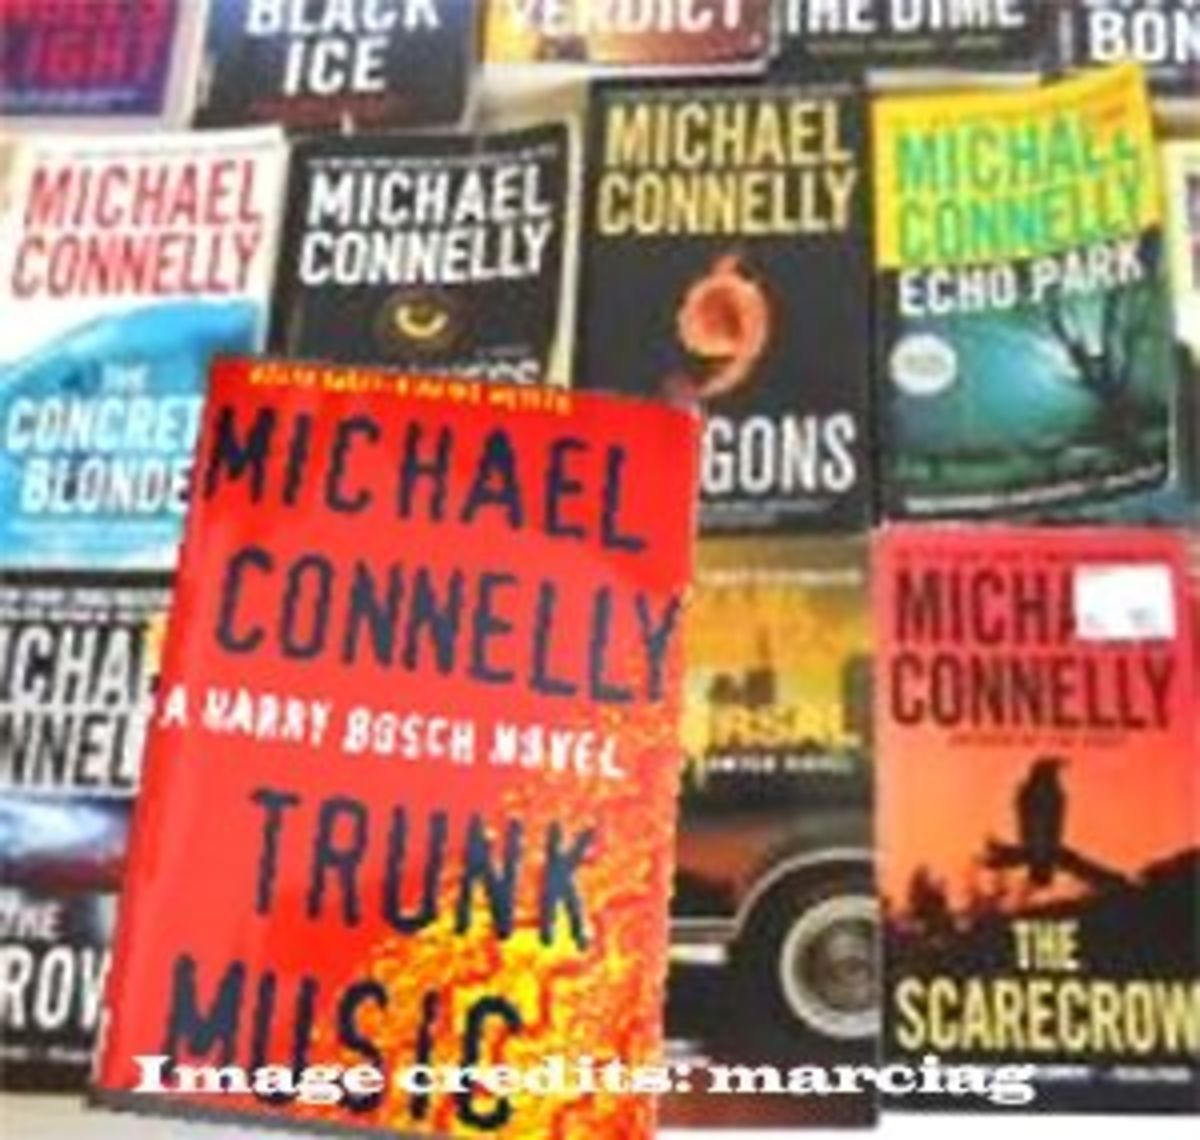 Part of my collection of Michael Connelly books - too many to show all in one photo!